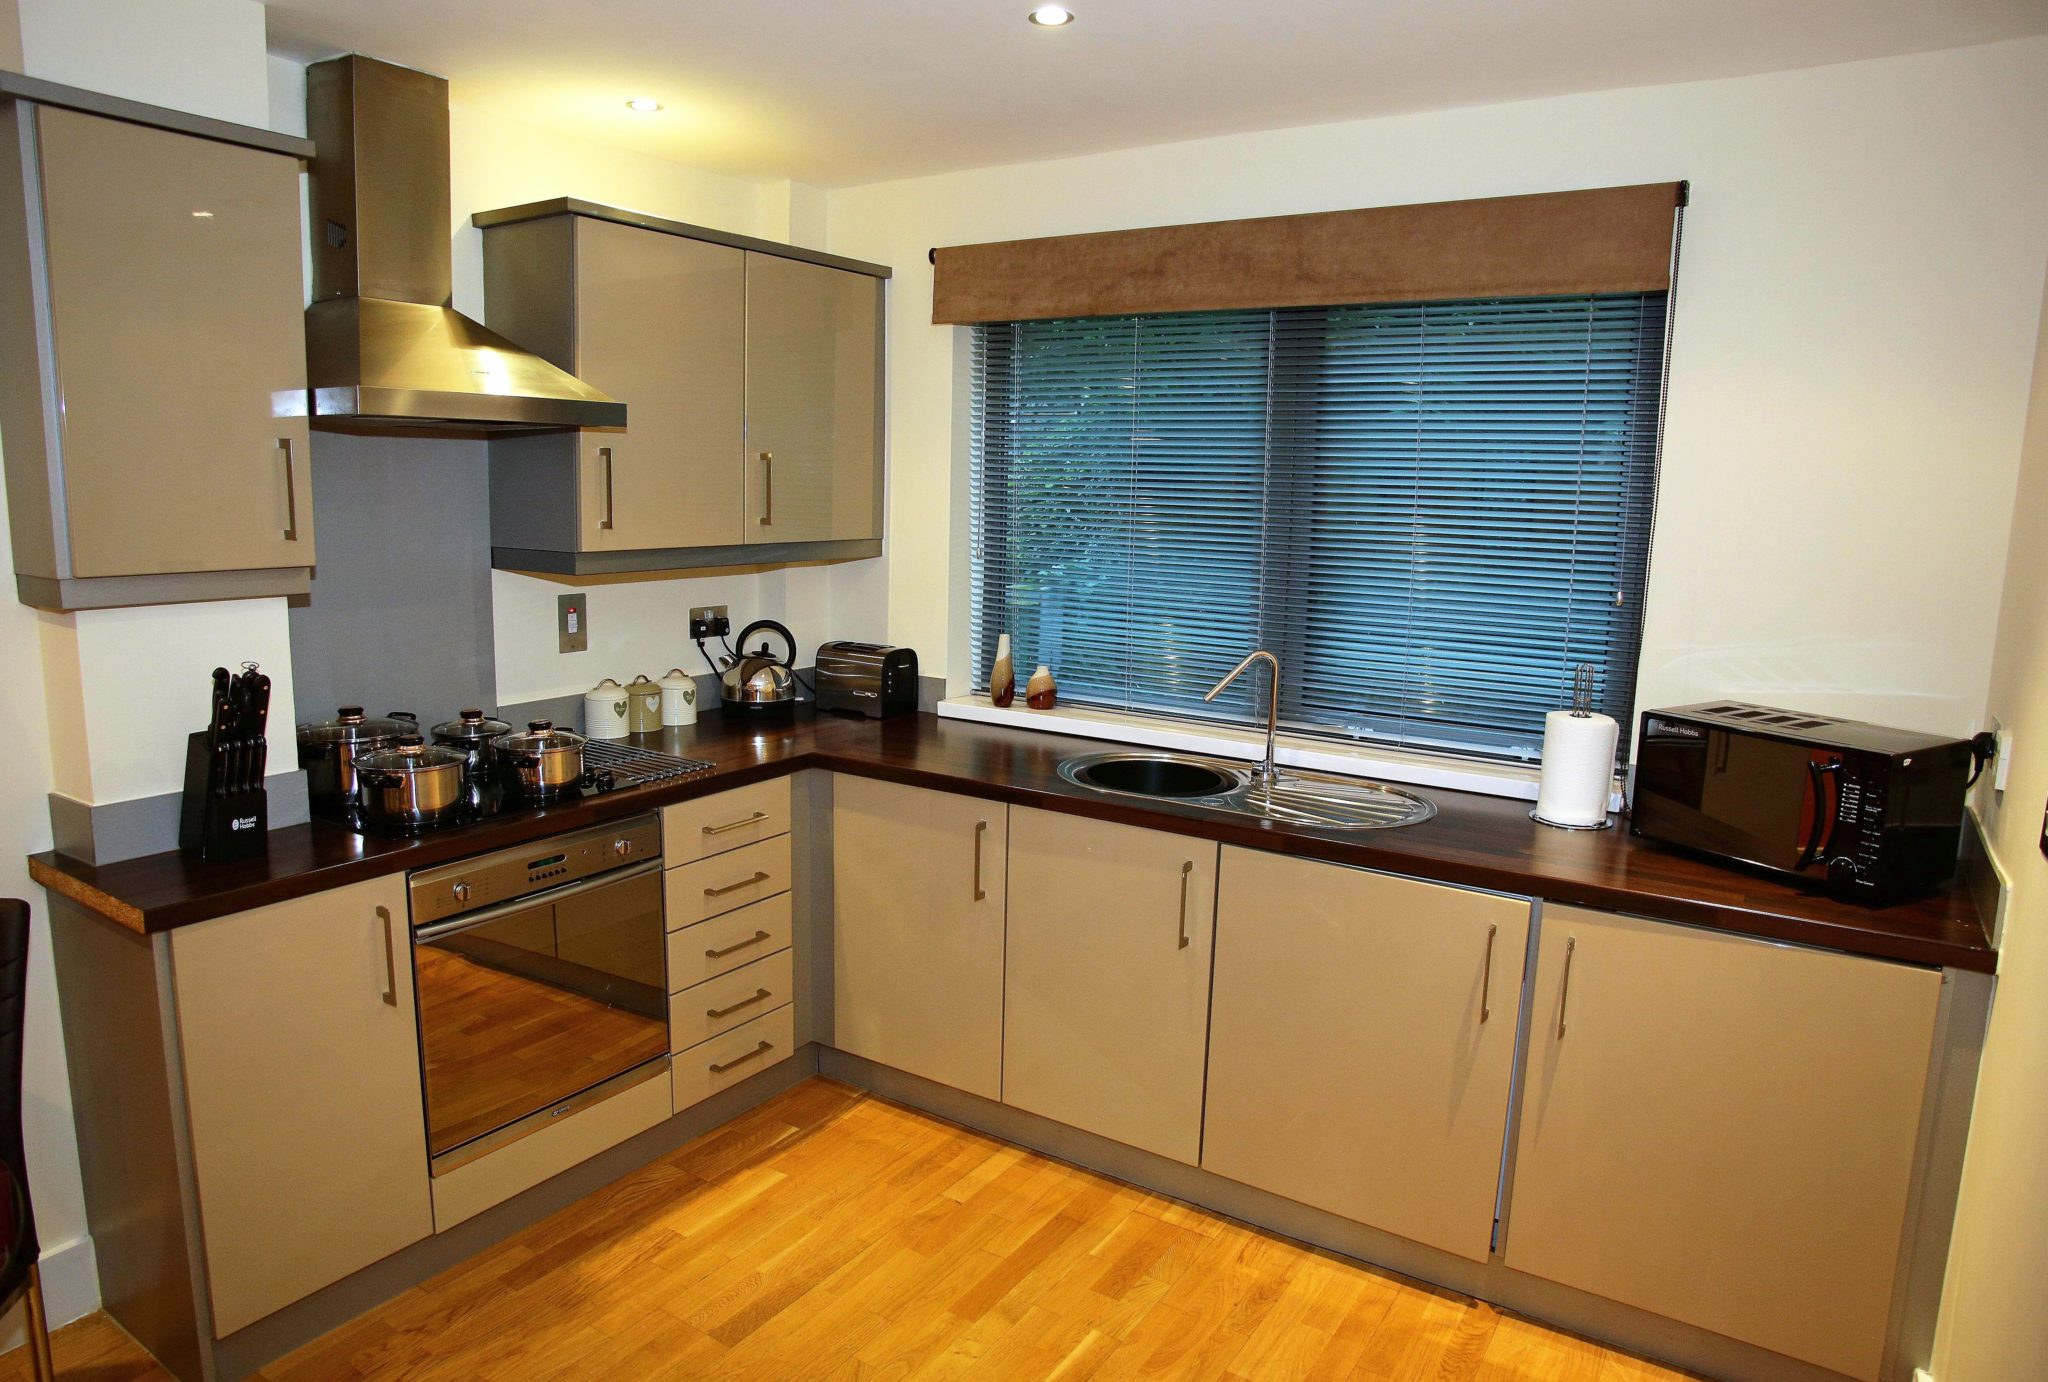 Luxury-Accommodation-Newcastle-UK-available-from-today!-Book-quality-corporate-Serviced-Apartments-in-Central-Newcastle-today!-30%-Cheaper-than-a-Hotel!-Urban-Stay